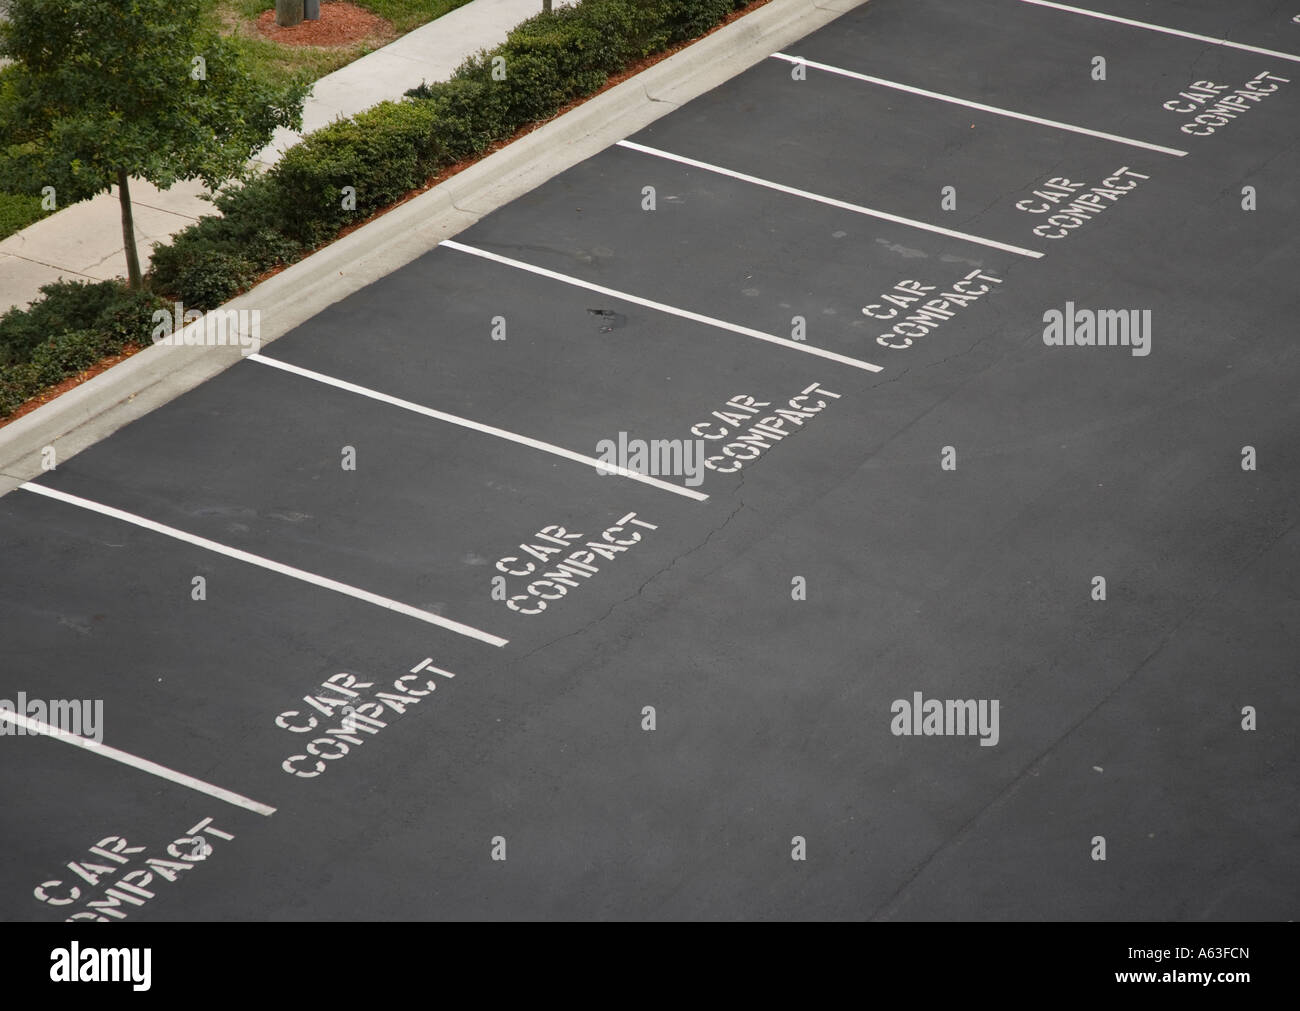 Parking spaces for compact cars Stock Photo: 11448452 - Alamy